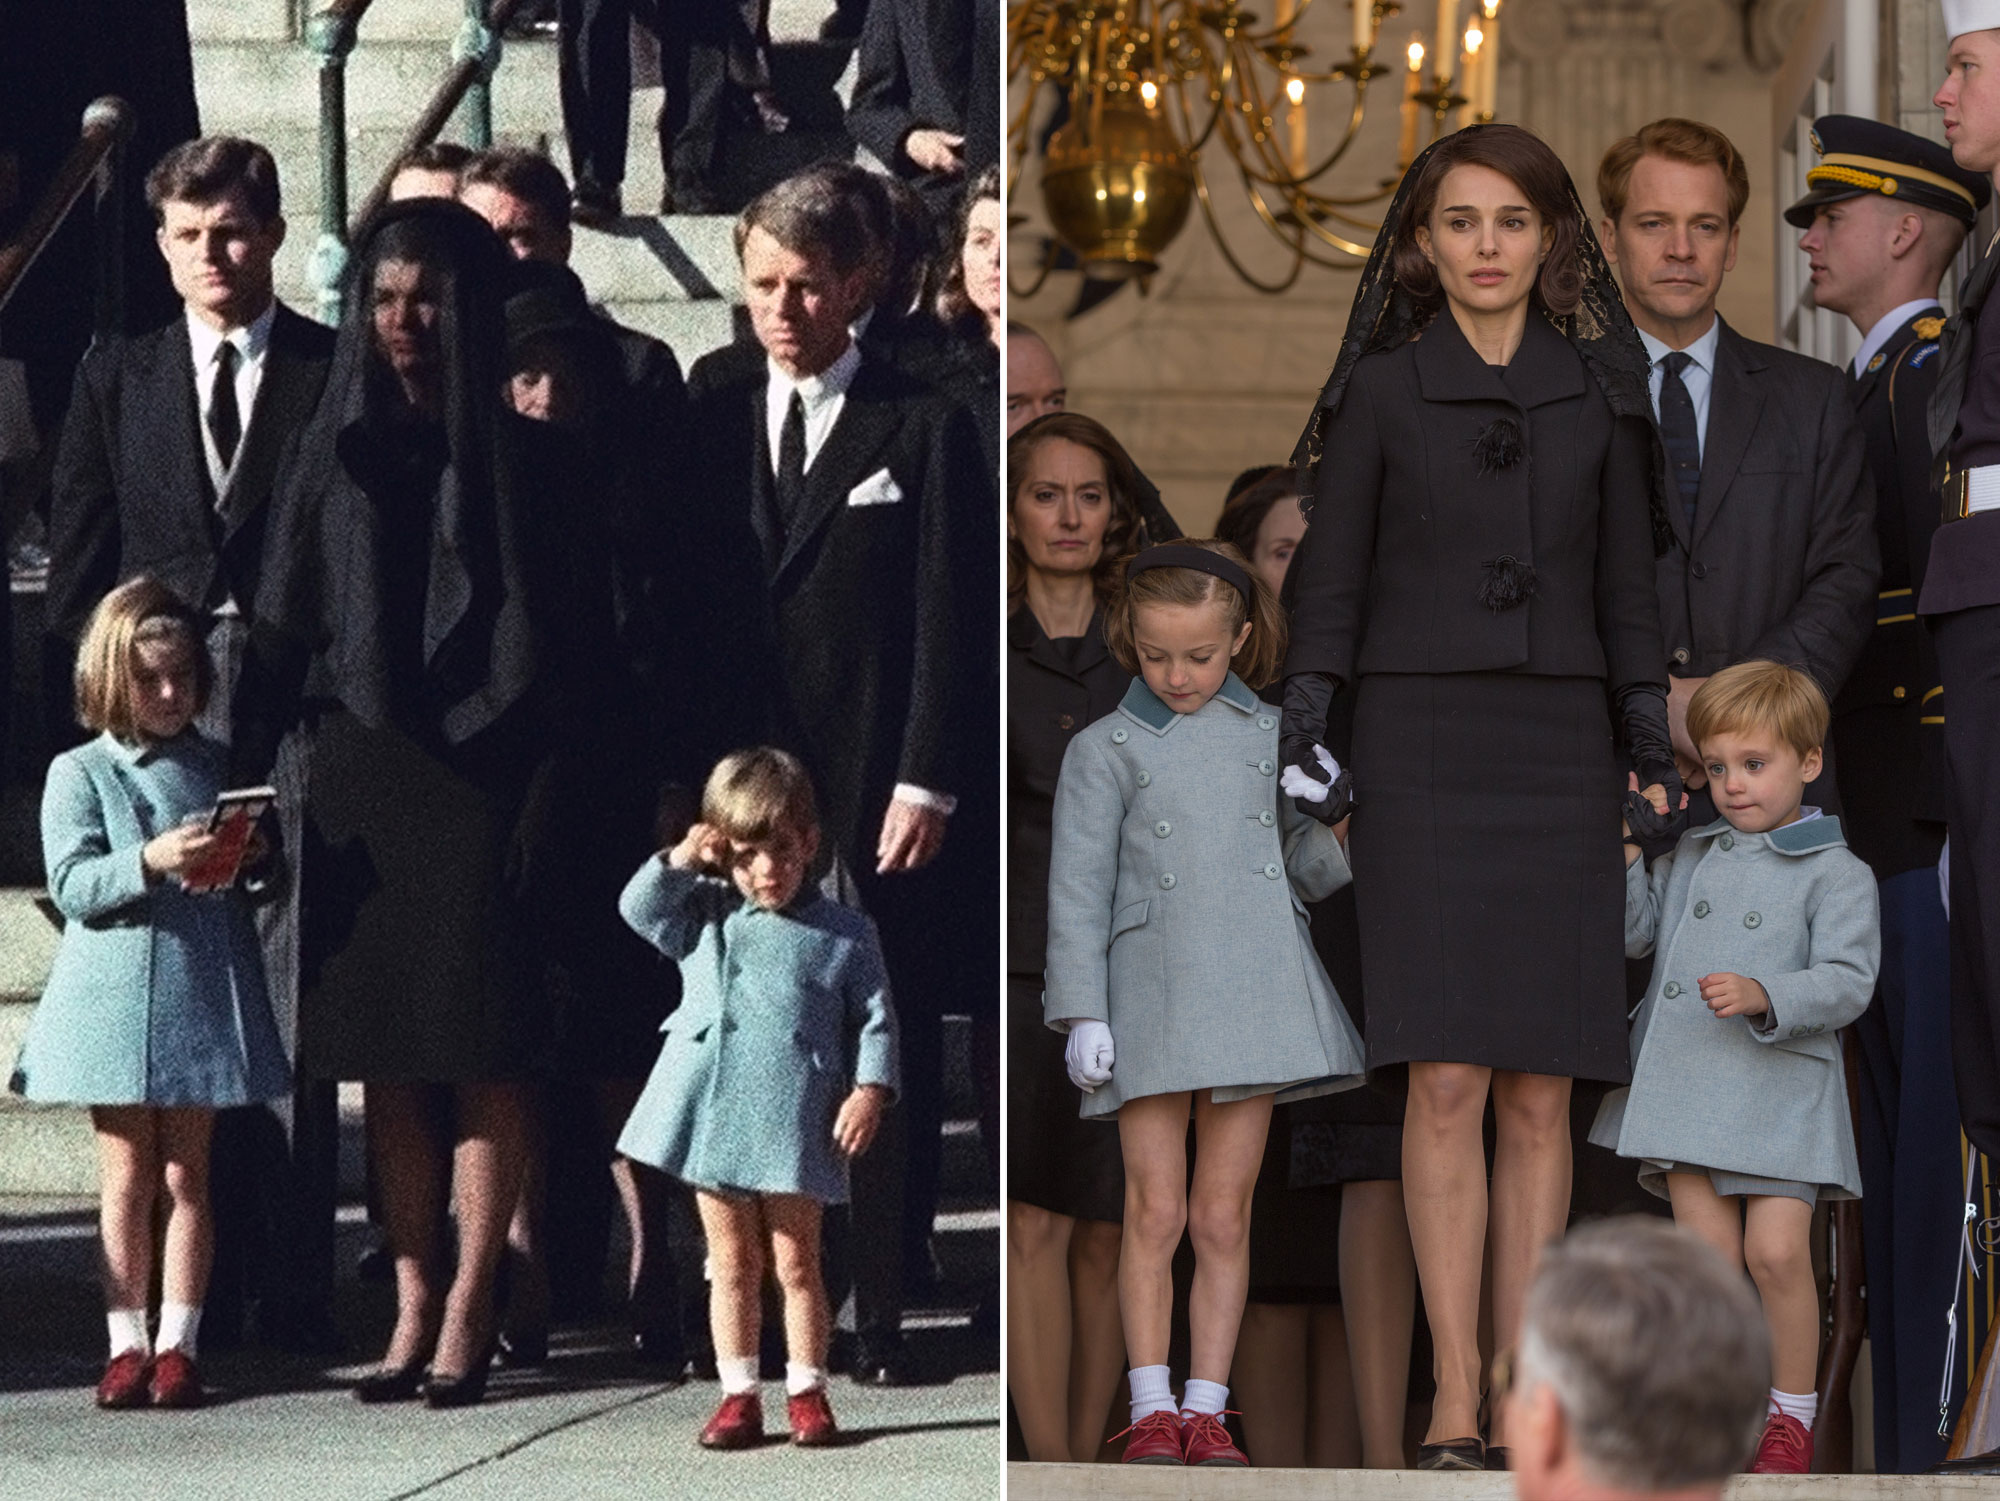 """456969.JPG 1CA9C02B Three-year-old John F. Kennedy Jr. salutes his father's casket in Washington on Nov. 25, 1963, three days after the president was assassinated in Dallas. Widow Jacqueline Kennedy, center, and daughter Caroline Kennedy are accompanied by the late president's brothers Sen. Edward Kennedy, left, and Attorney General Robert Kennedy. (AP Photo) JOHN F KENNEDY FUNERAL 1963 AP APHS025500 JFK FUNERAL AP Natalie Portman as """"Jackie Kennedy"""" in JACKIE. Photo by William Gray. © 2016 Twentieth Century Fox Film Corporation All Rights Reserved"""